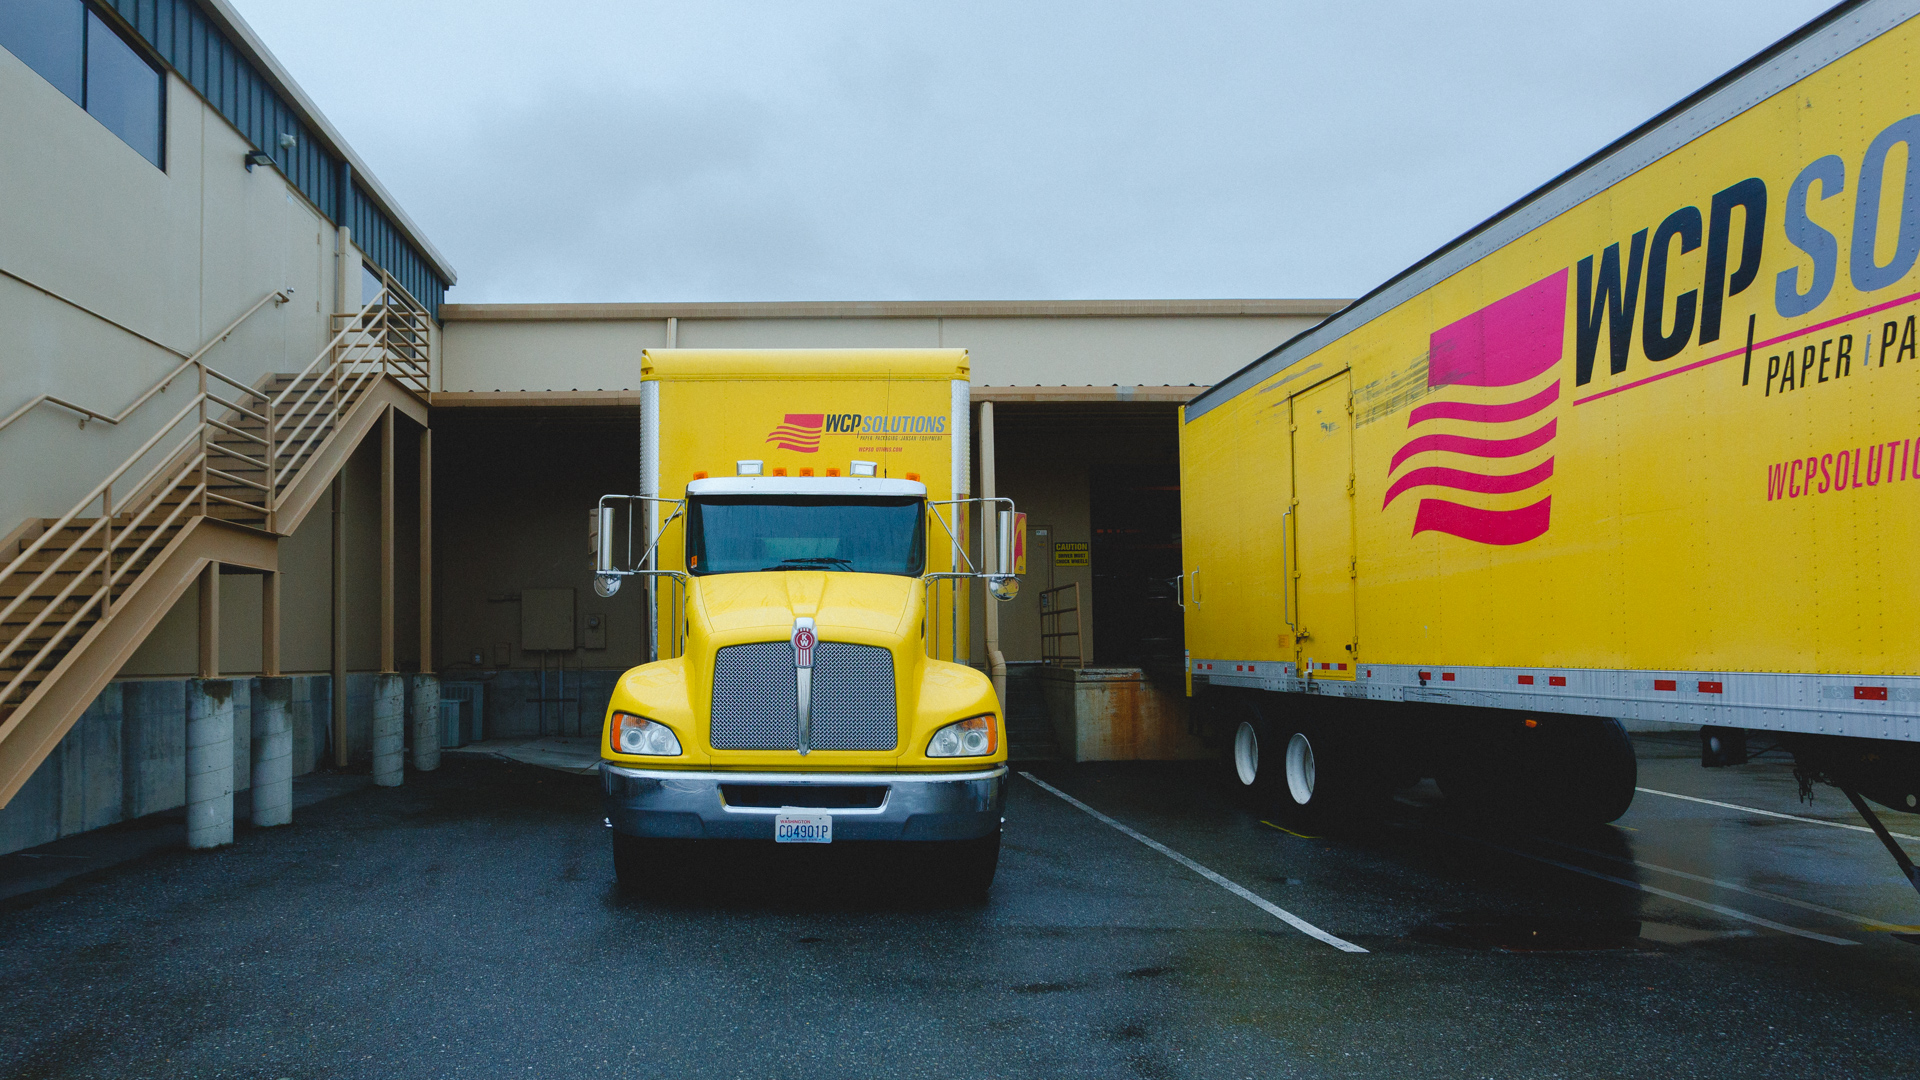 WCP Solutions' big yellow truck parked in front of loading dock at a warehouse